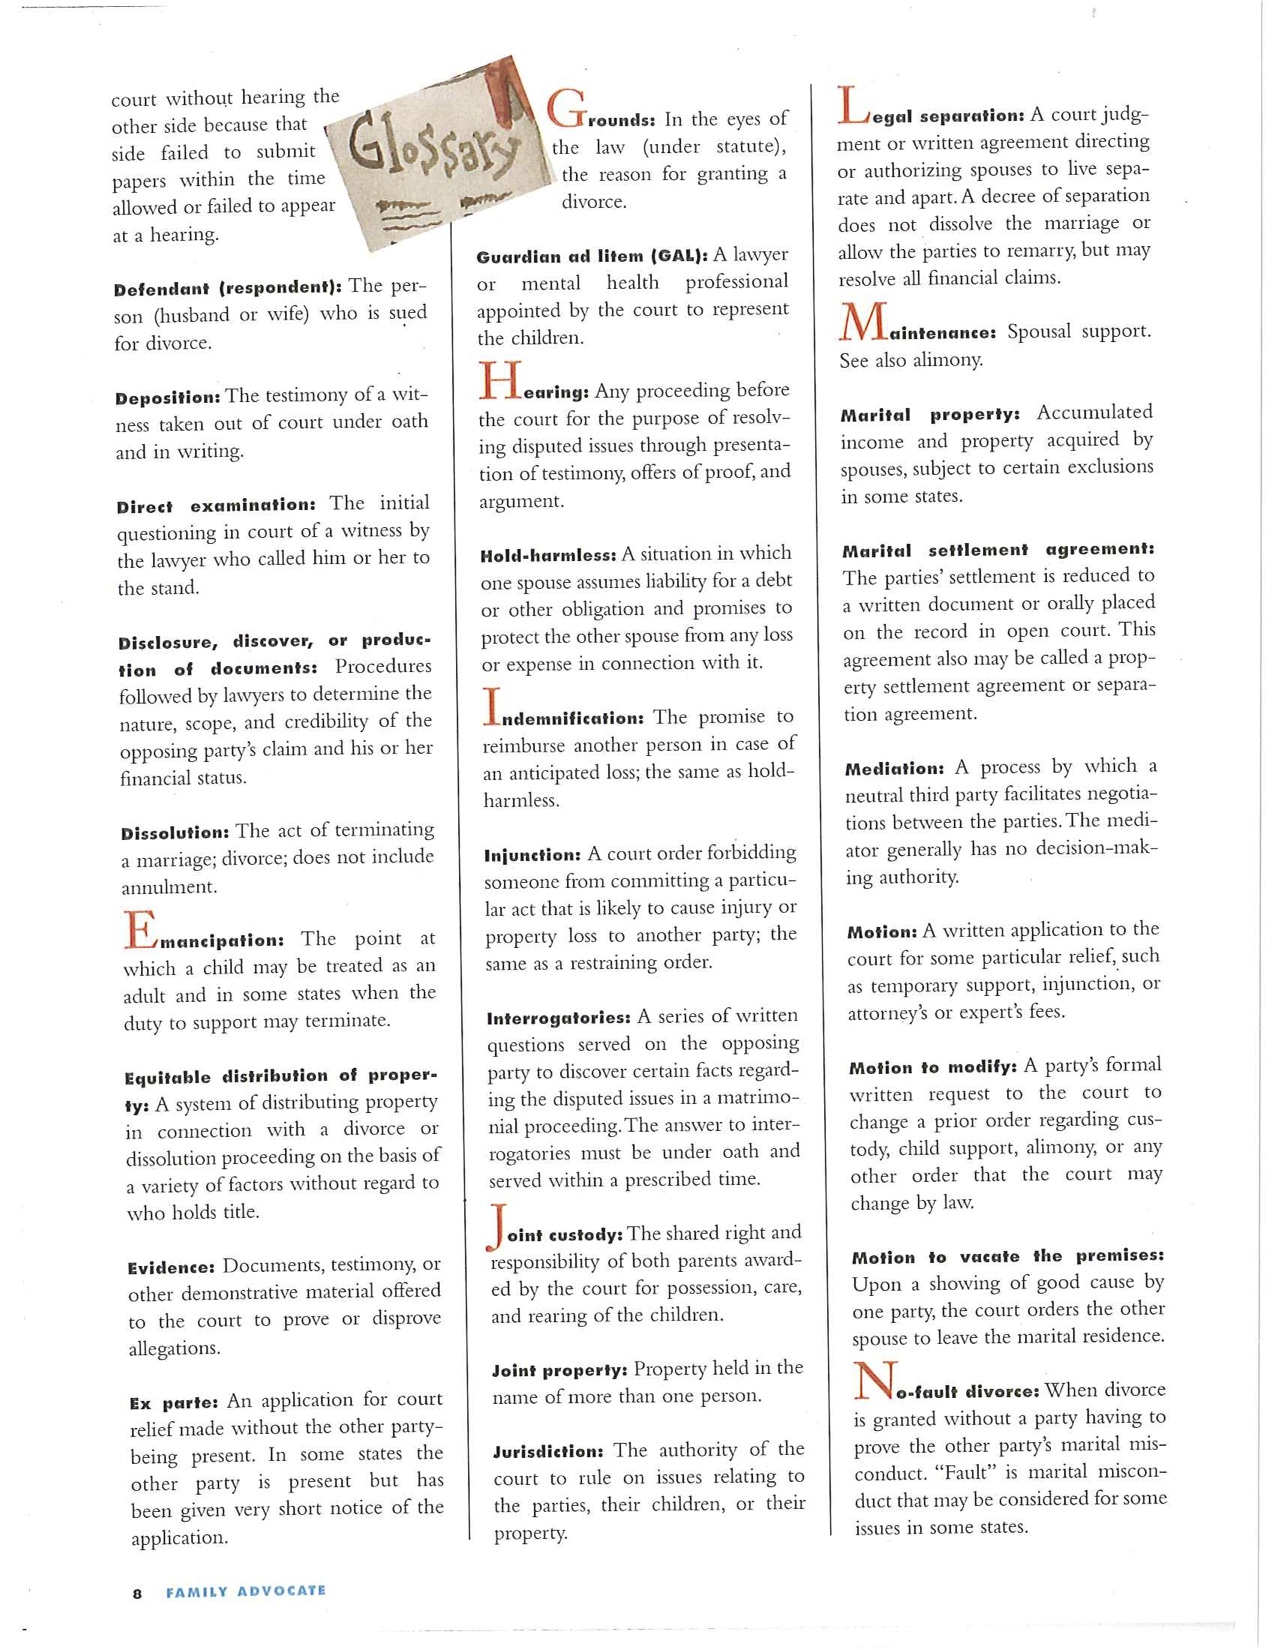 Glossary of legal divorce terms page 2